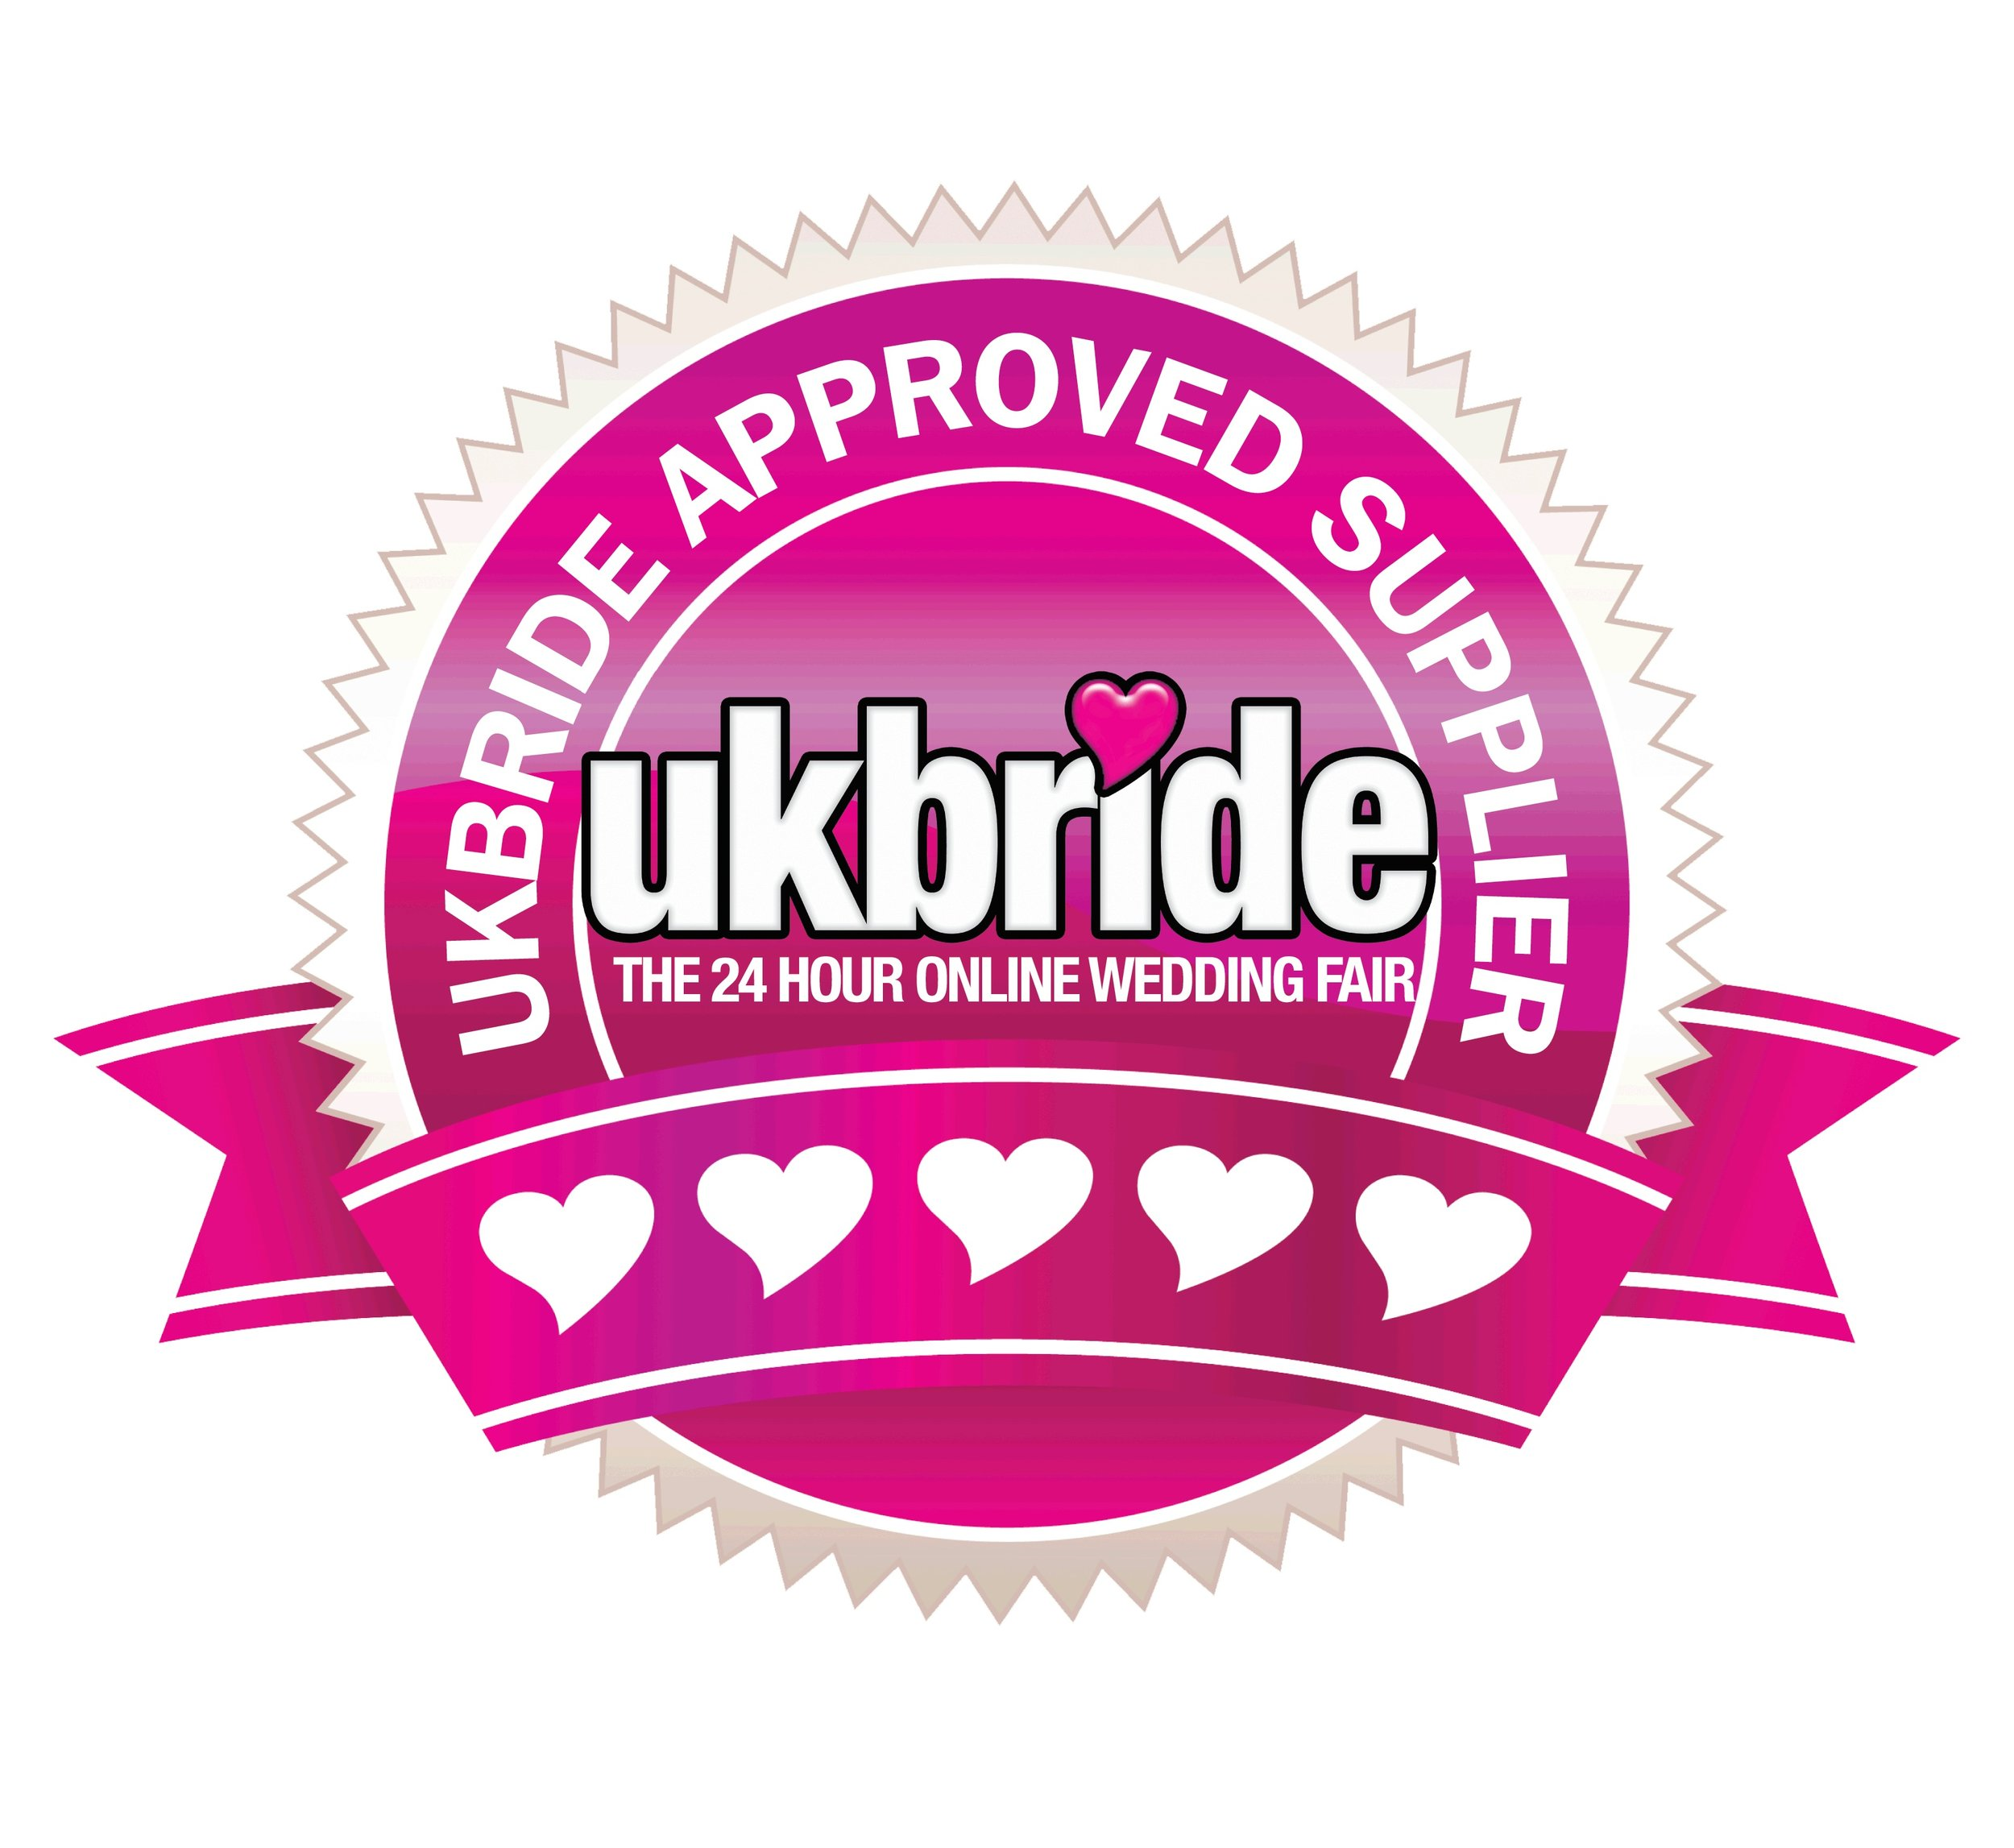 UK-Bride-logo.jpg